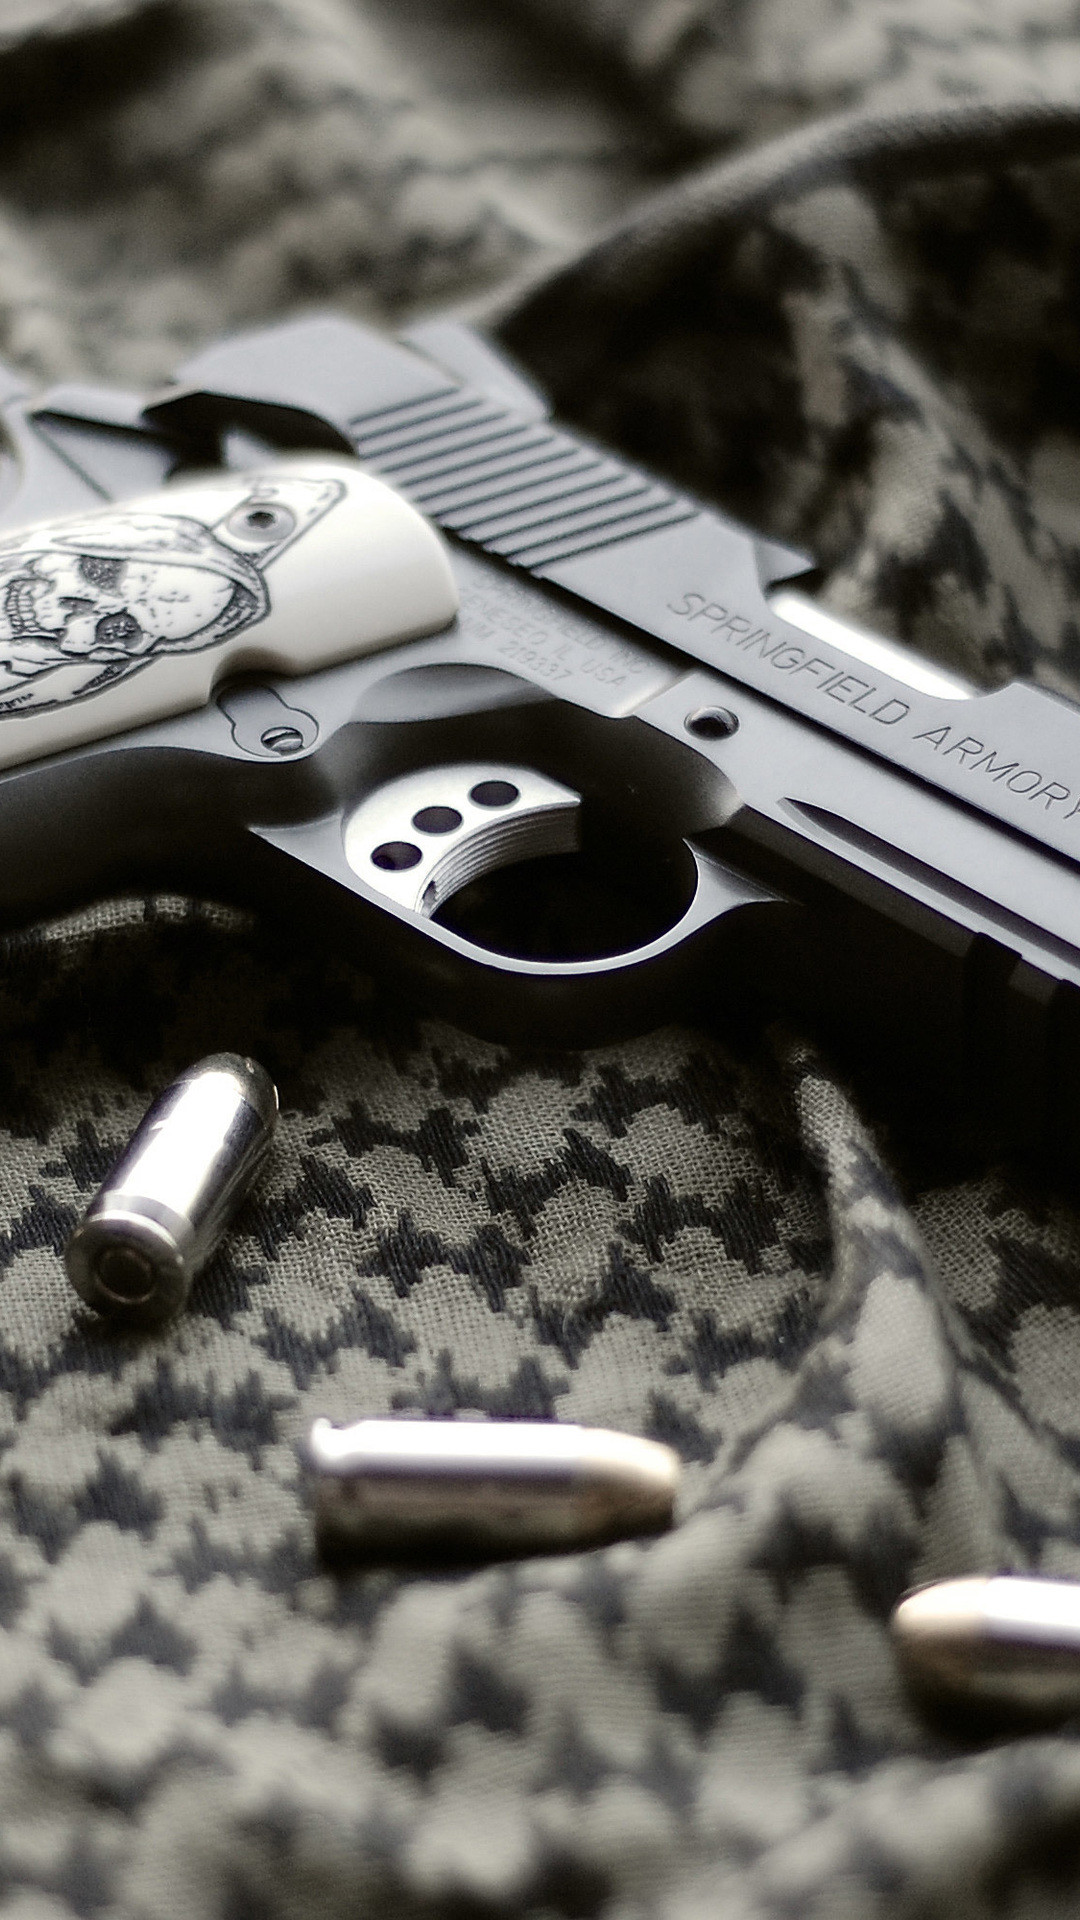 springfield armory wallpapers 10 – photo #9